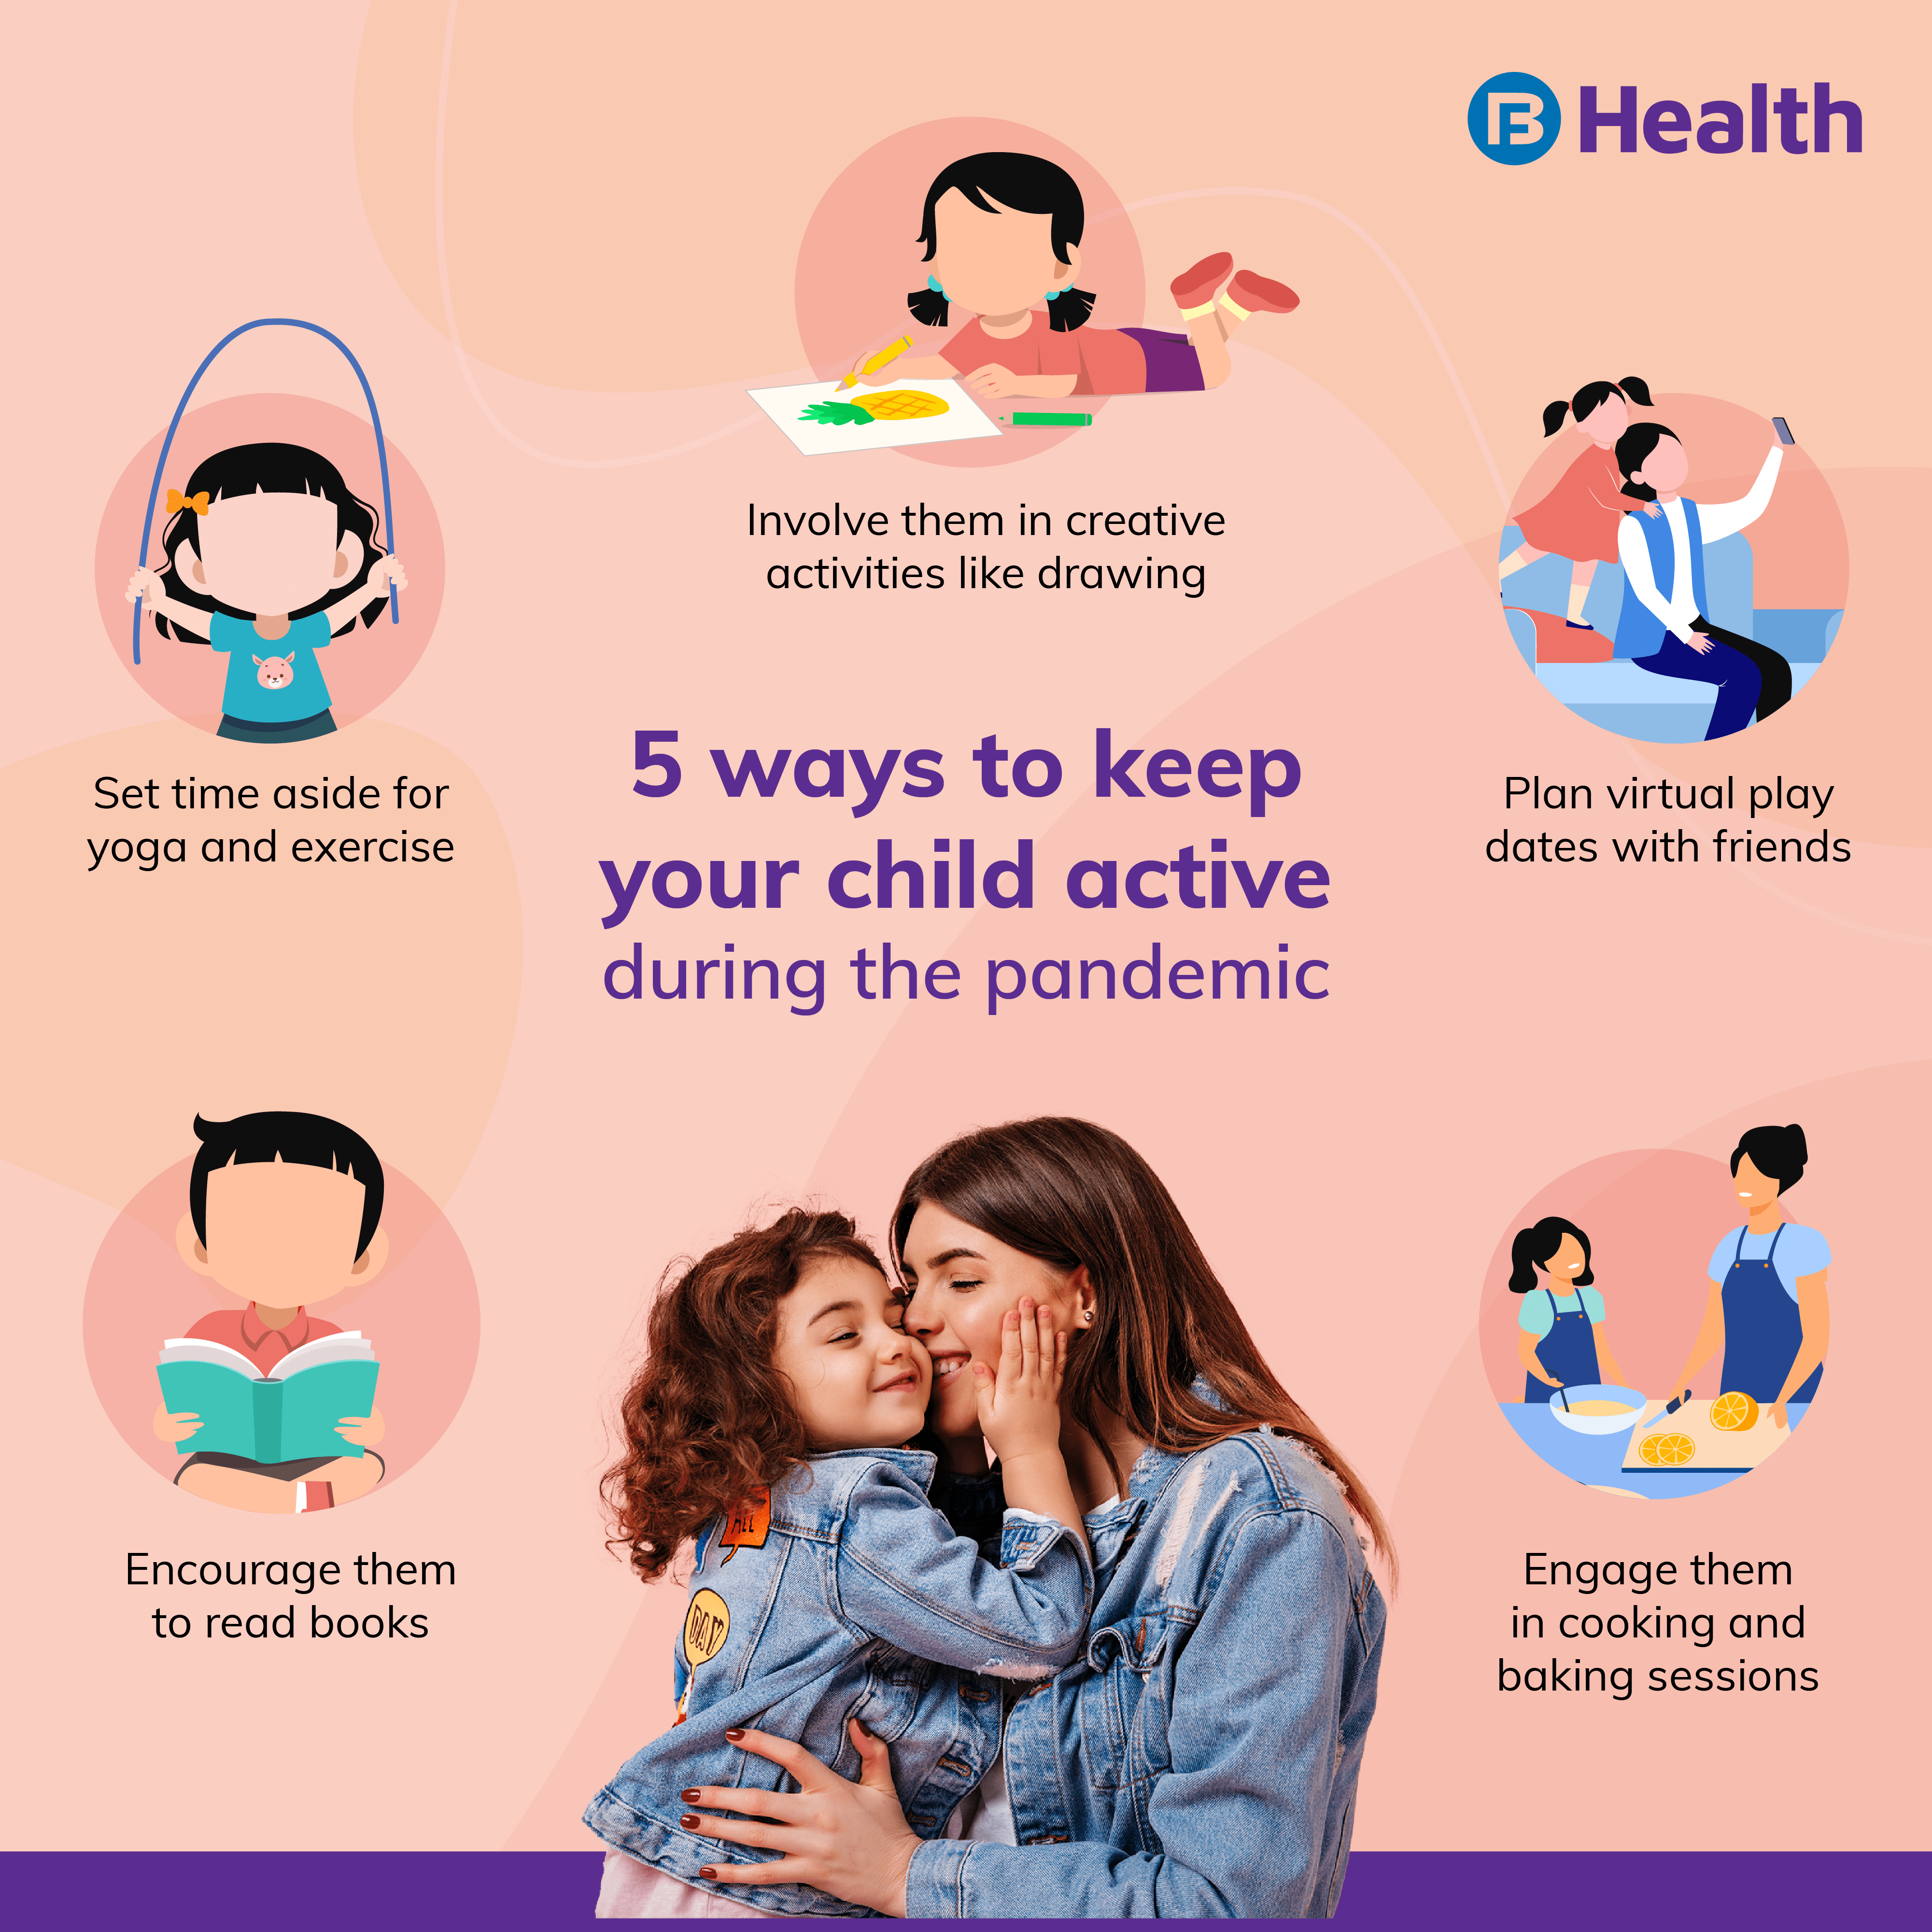 how to keep child active in pandemic